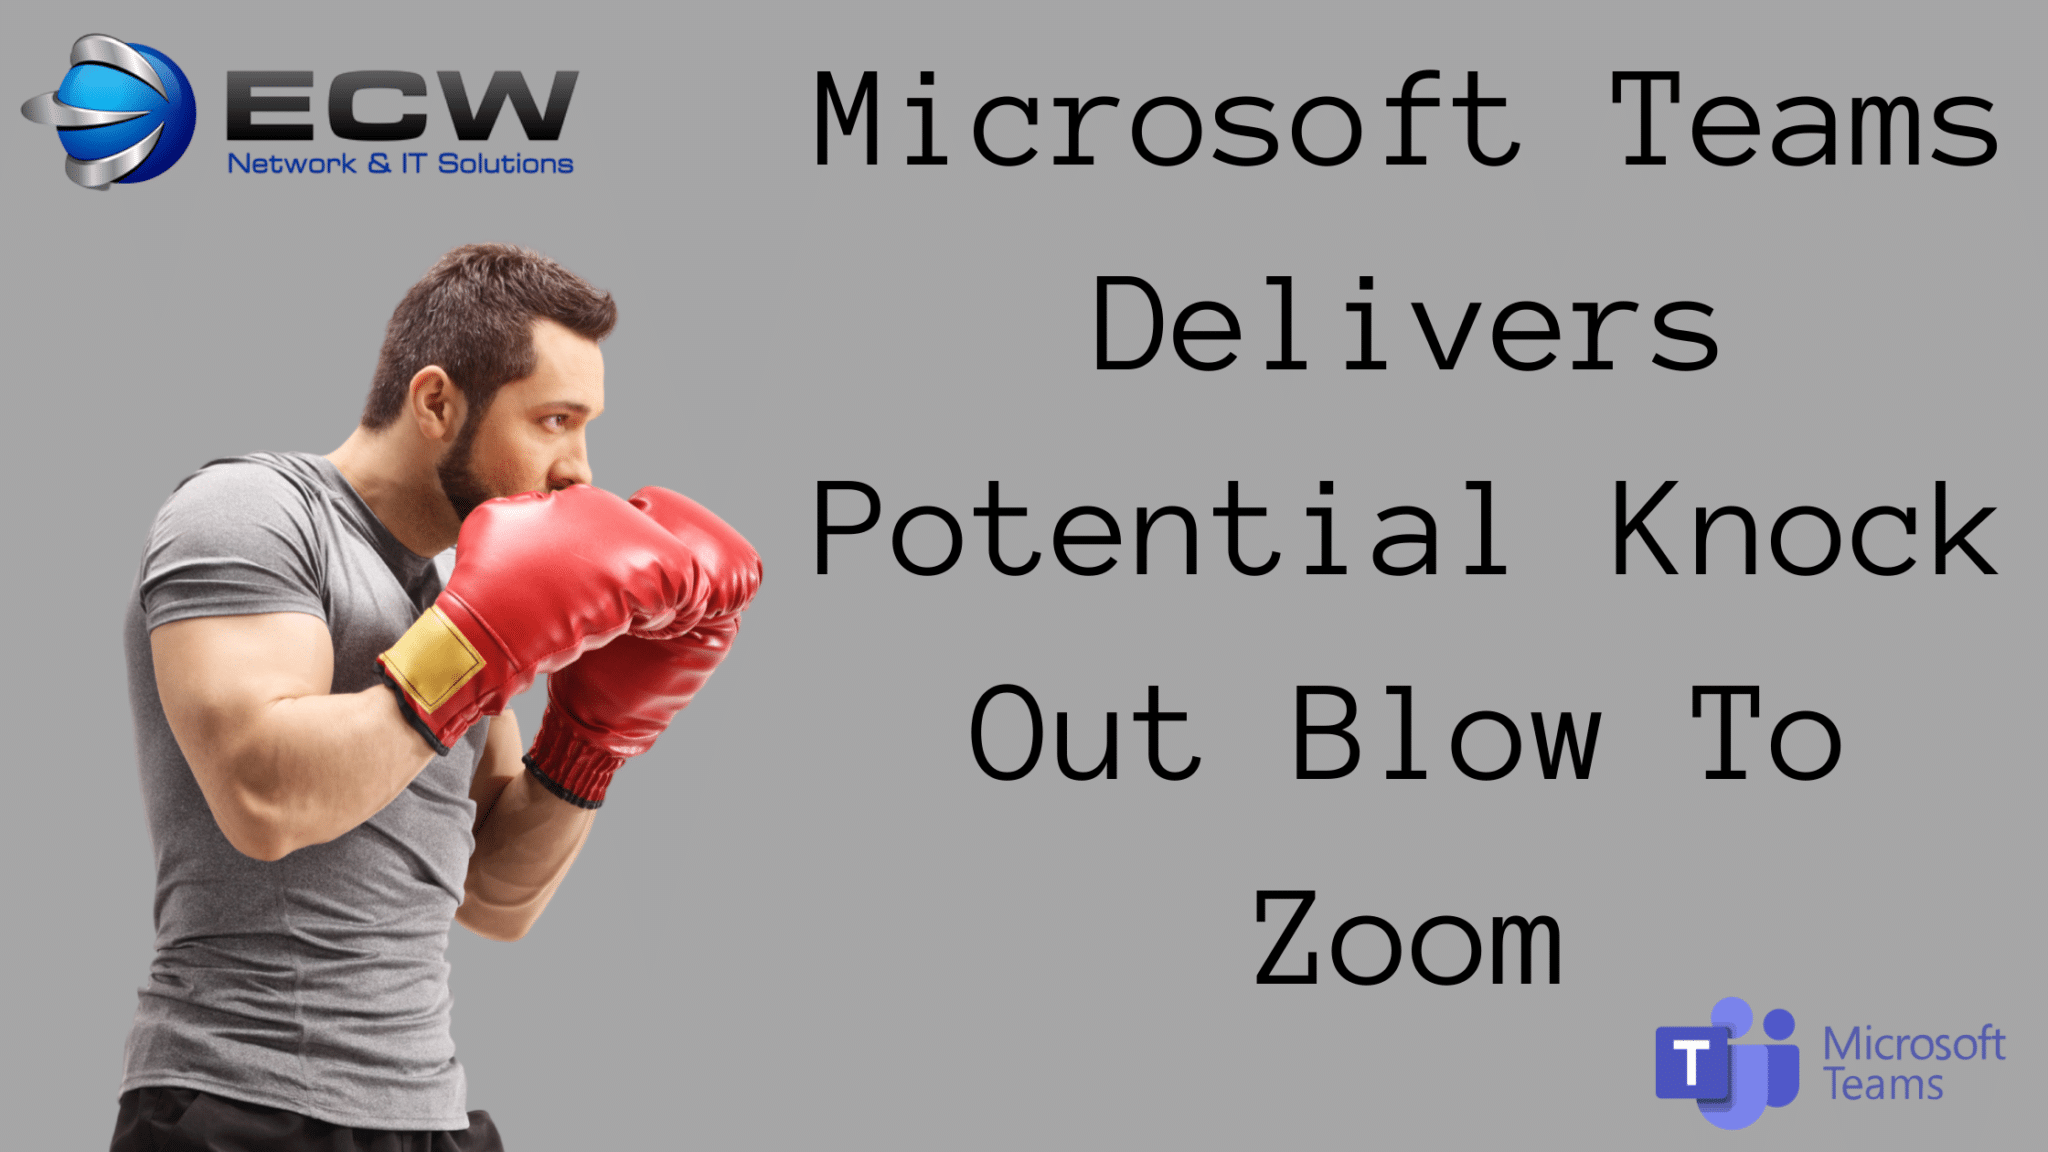 Microsoft Teams Delivers Potential Knock Out Blow To Zoom